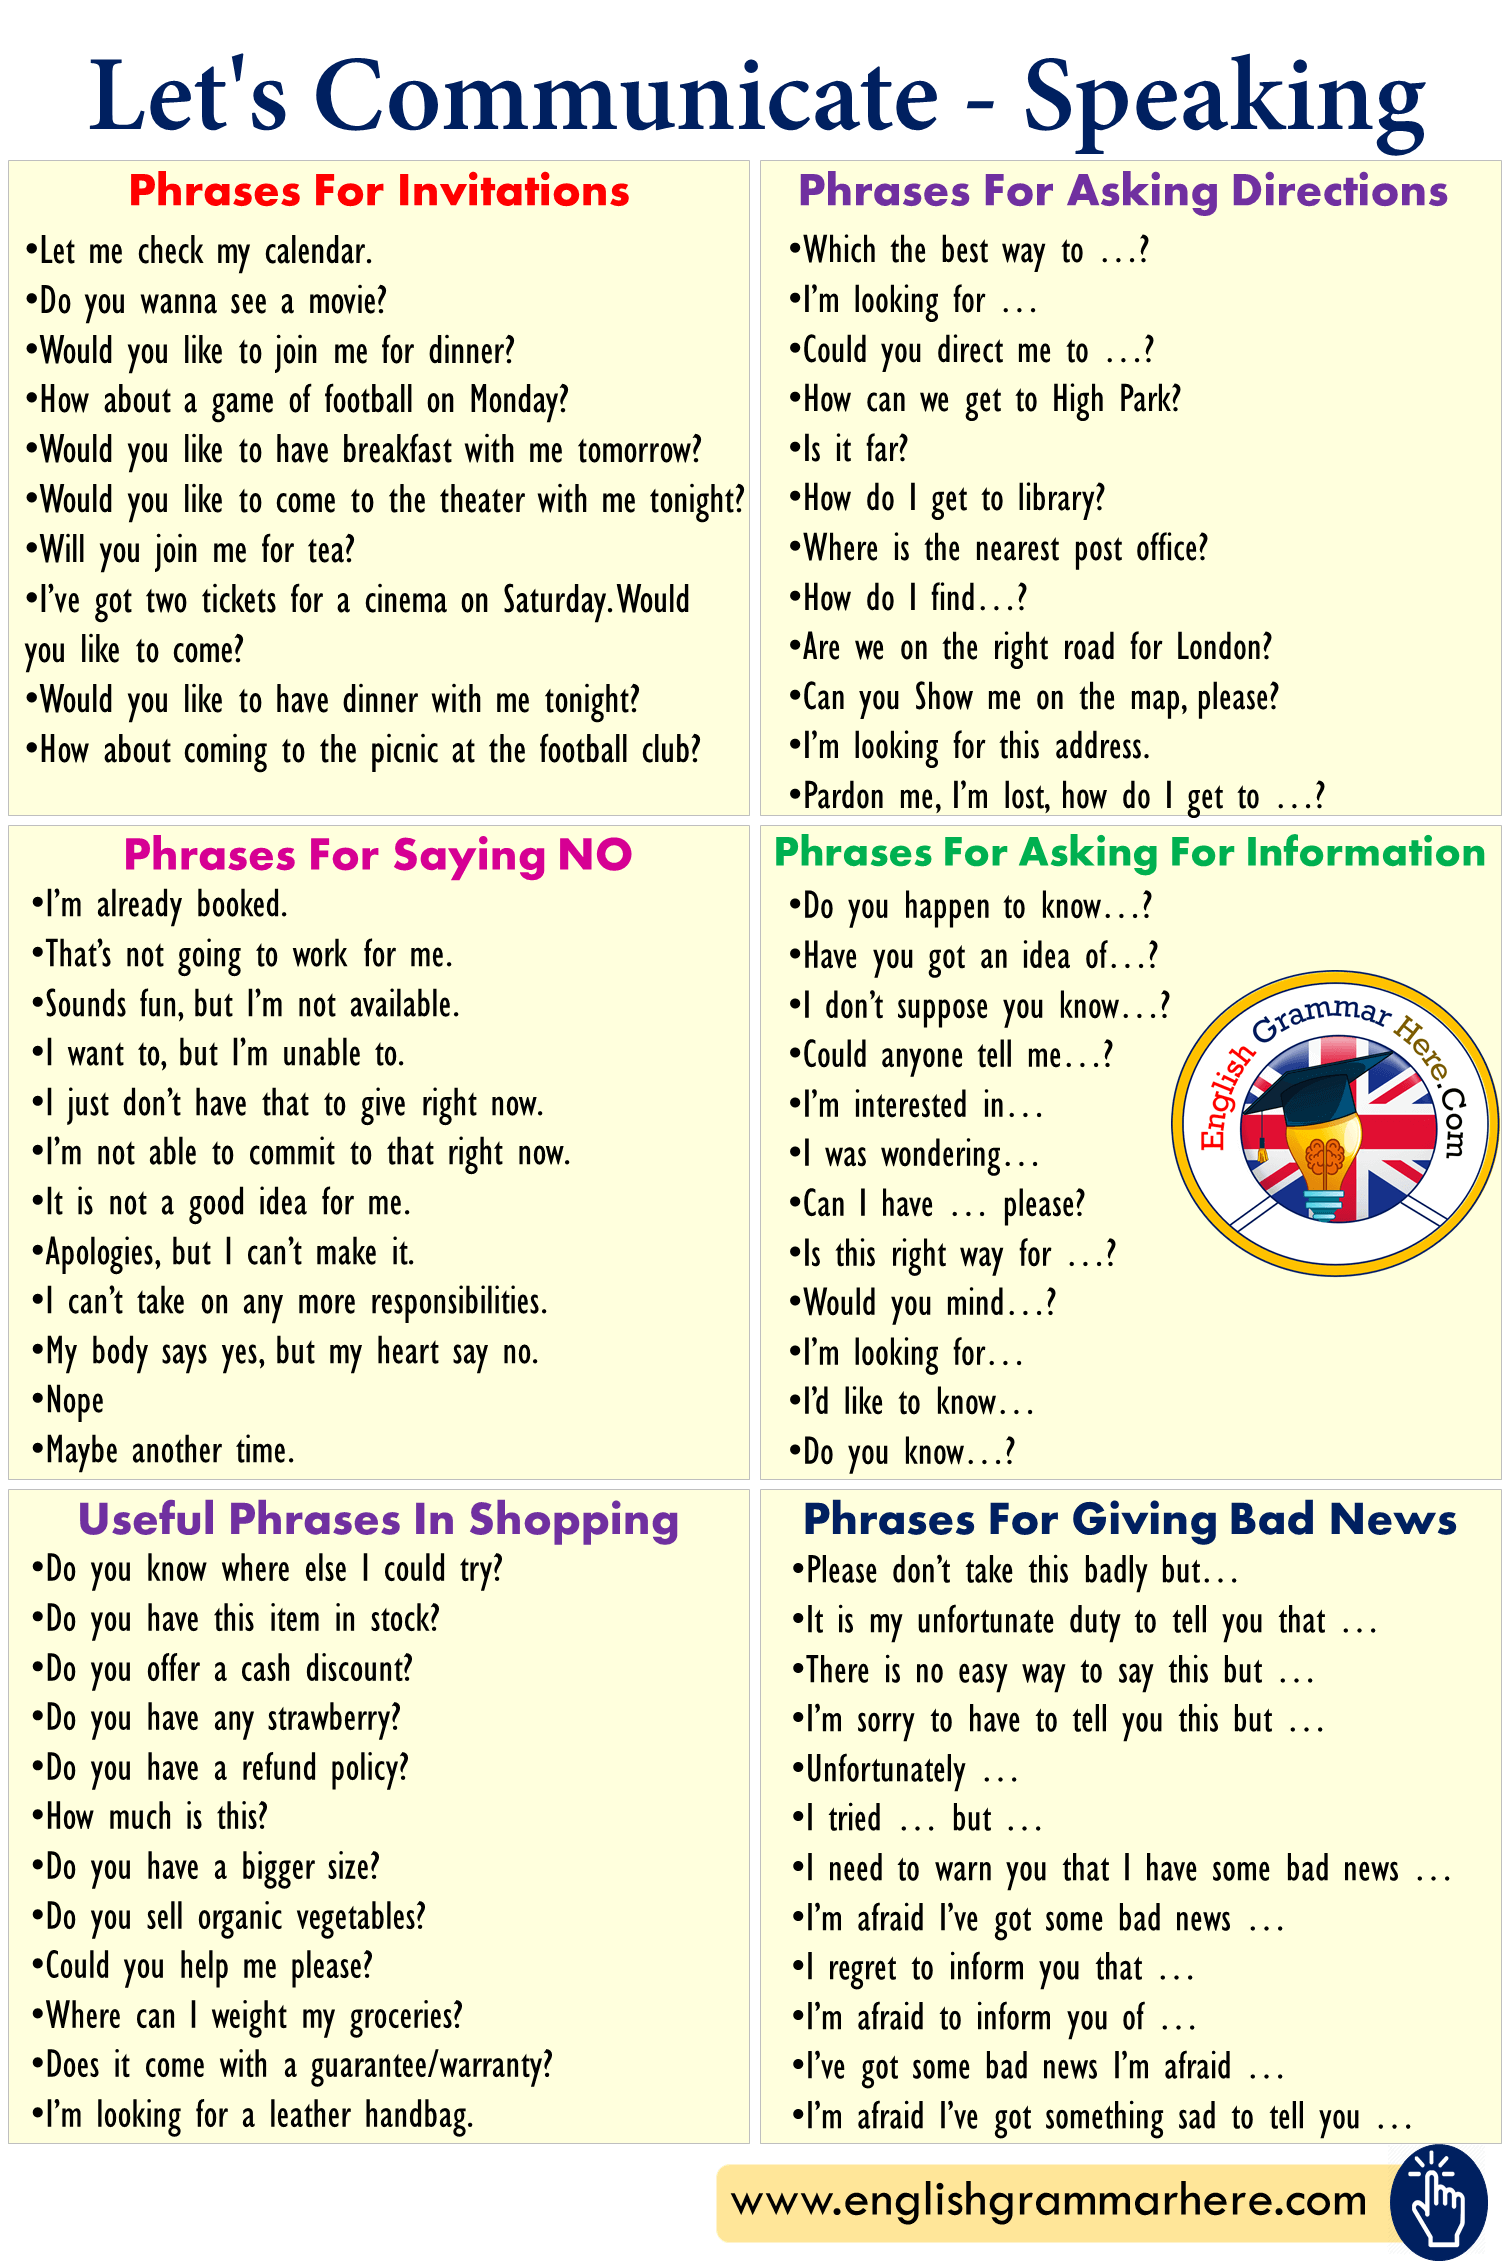 Let's Communicate - Speaking Phrases